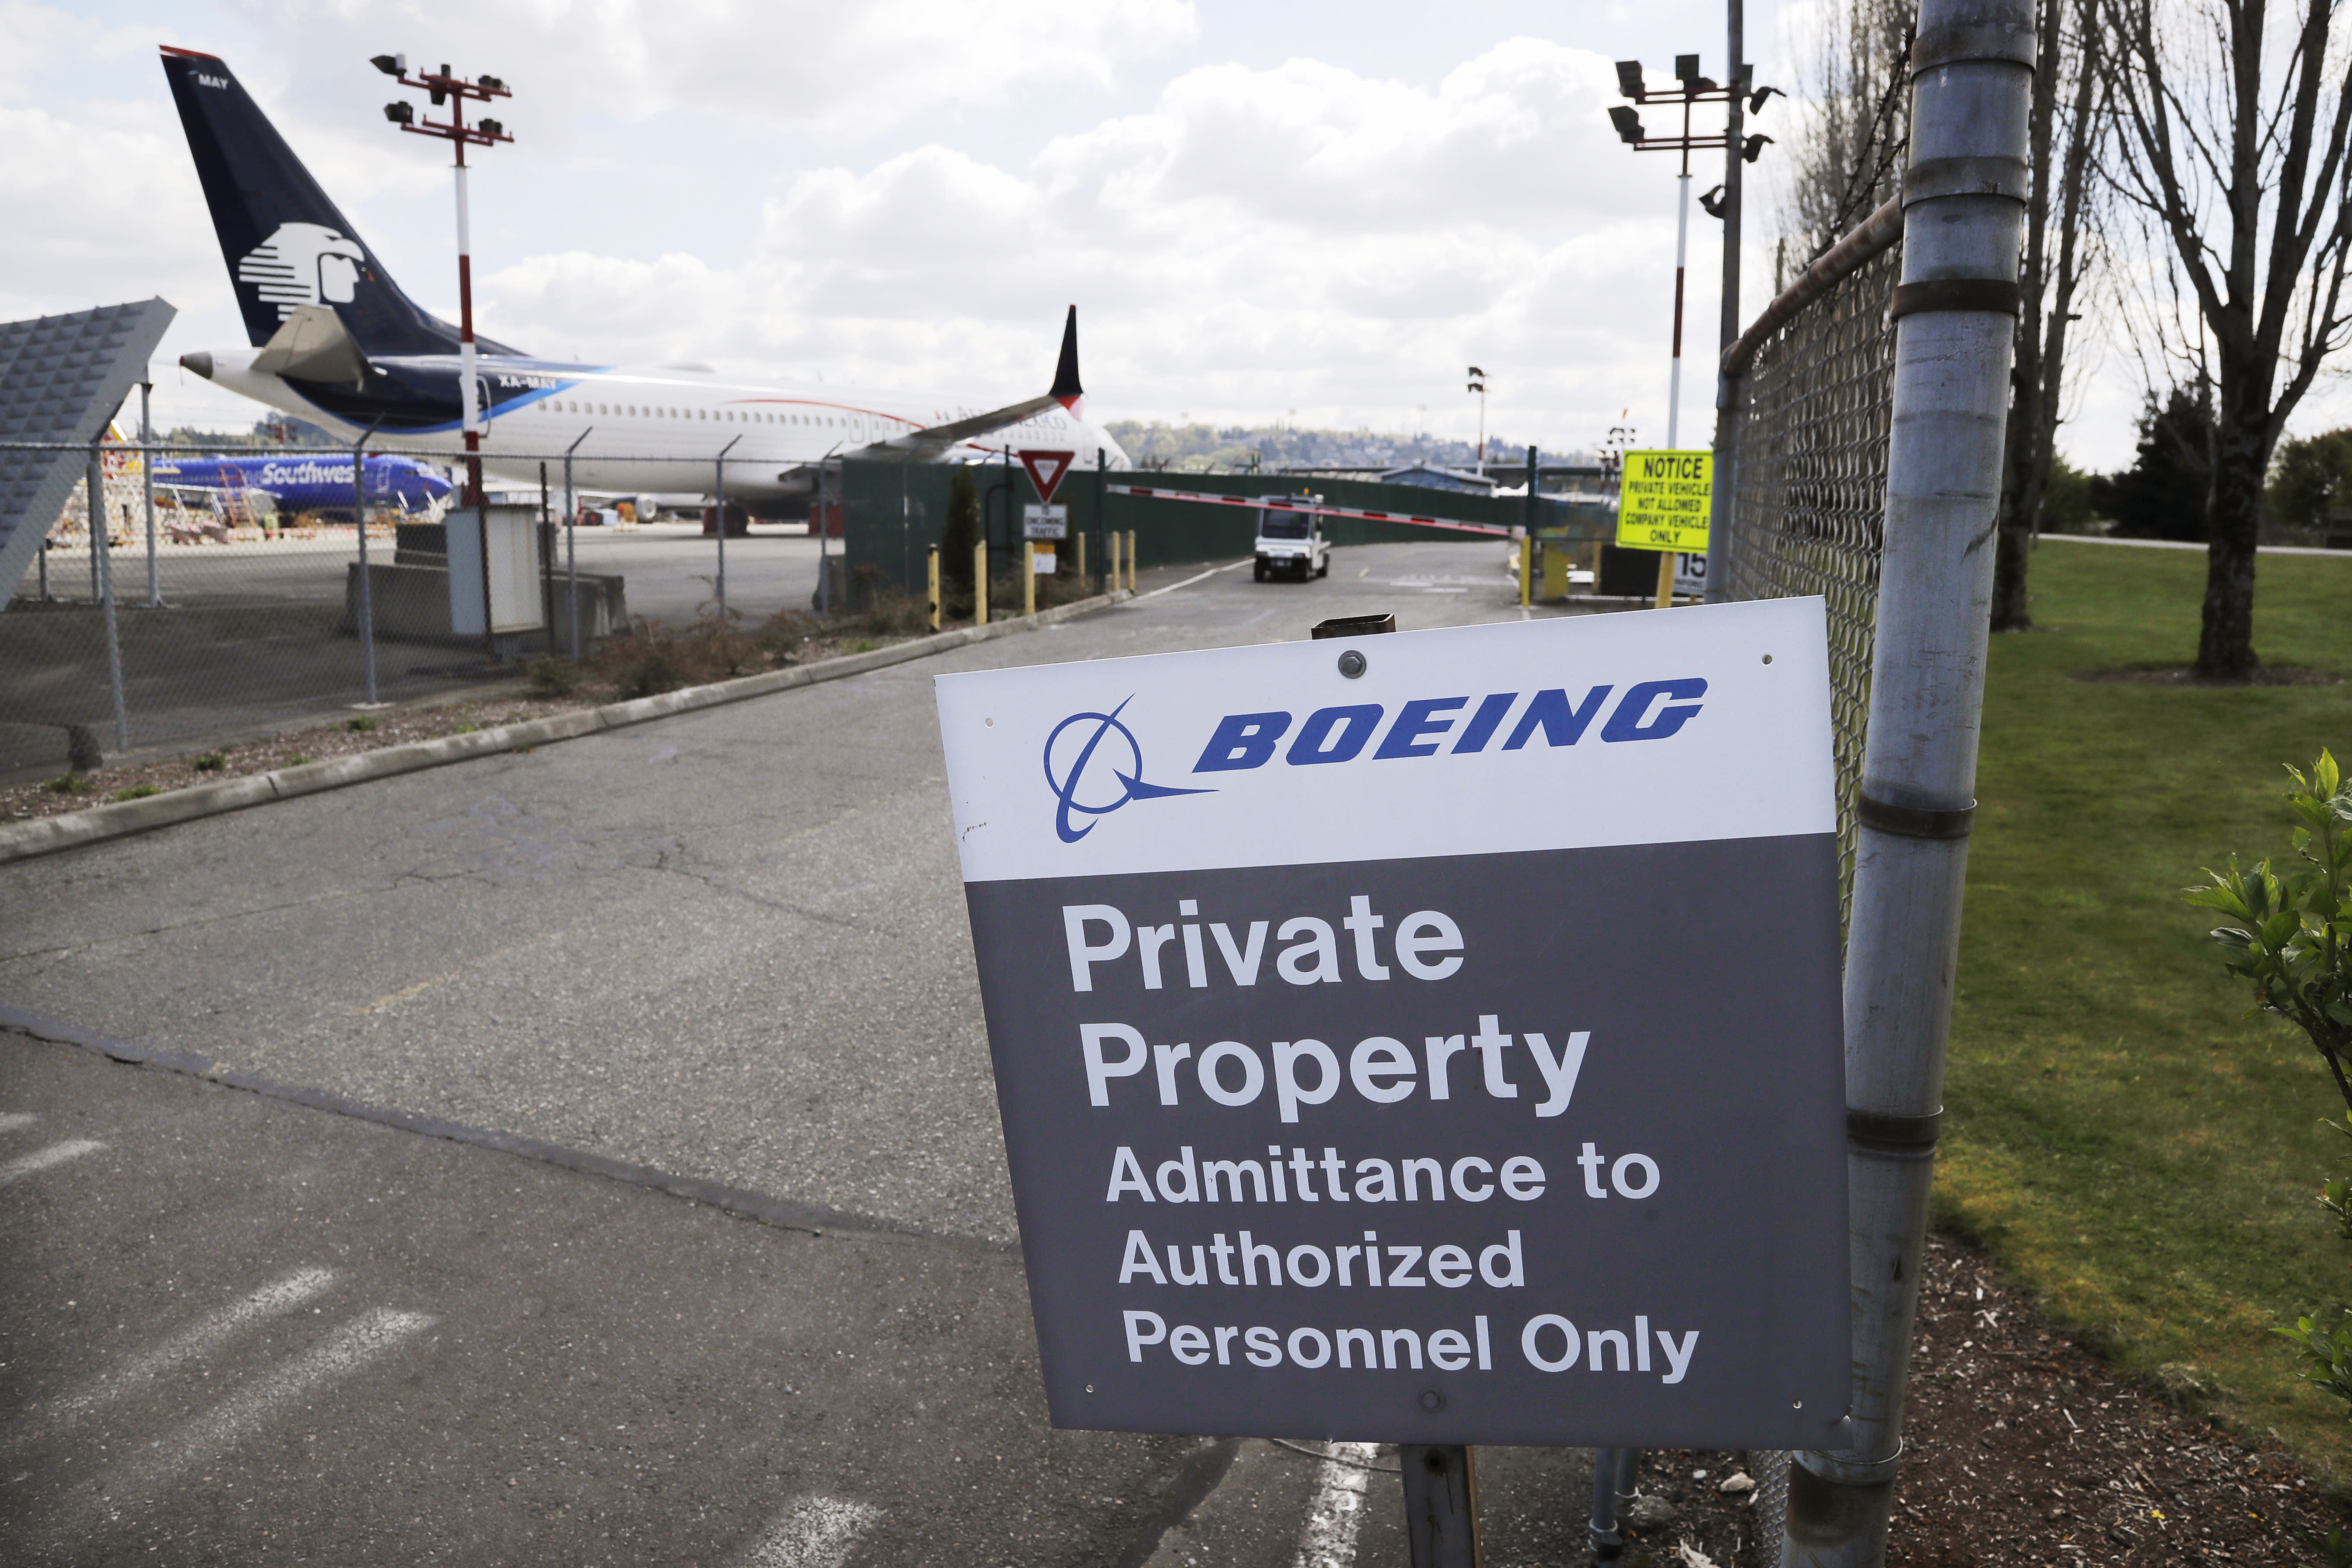 Boeing To Cut Workforce By 10% After Second Straight Quarterly Loss